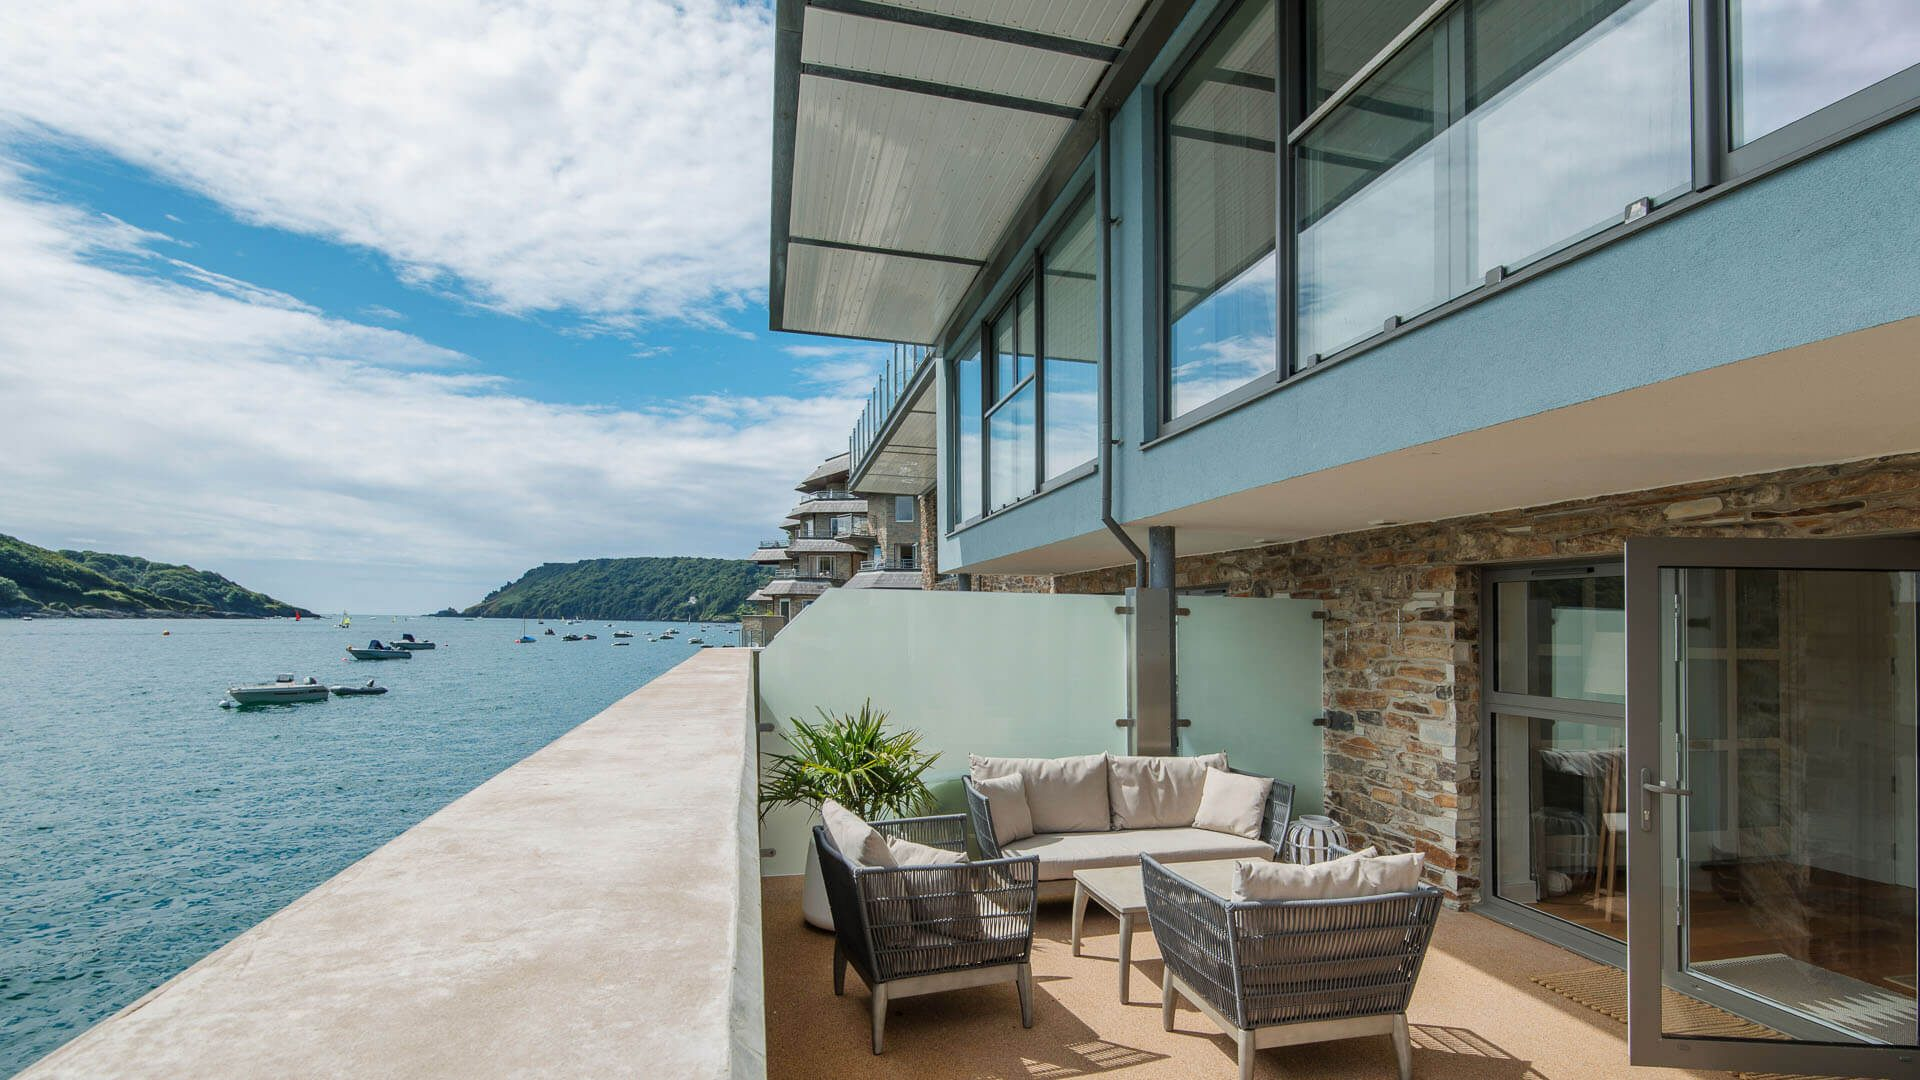 Superb Finest Salcombe Holiday Homes Self Catering Cottages With Download Free Architecture Designs Viewormadebymaigaardcom